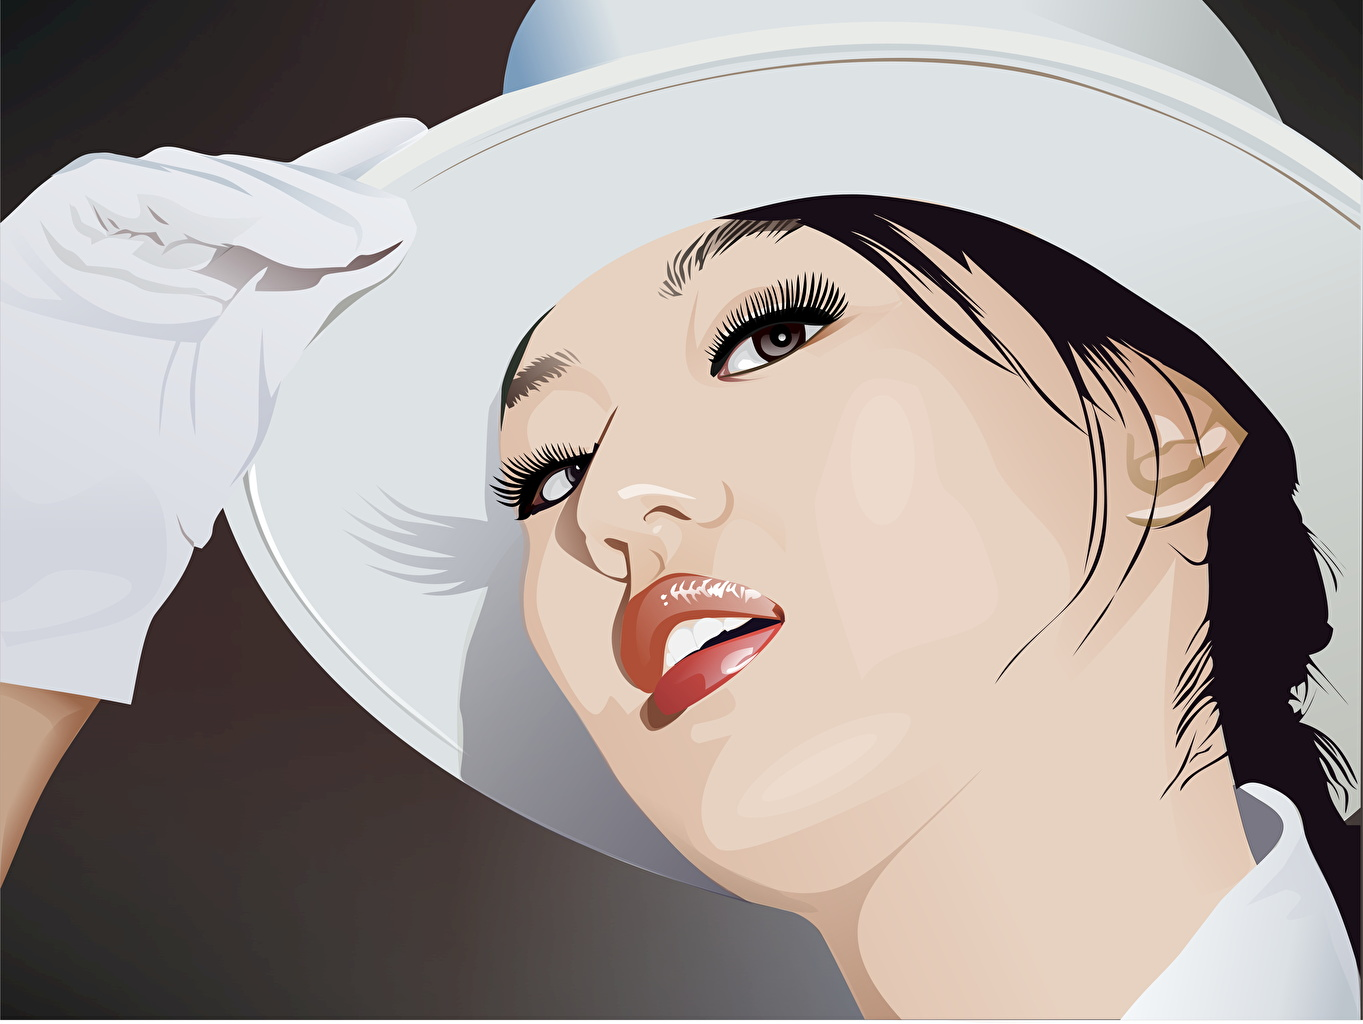 Image Glove Hat Face young woman Painting Art Vector Graphics Girls female